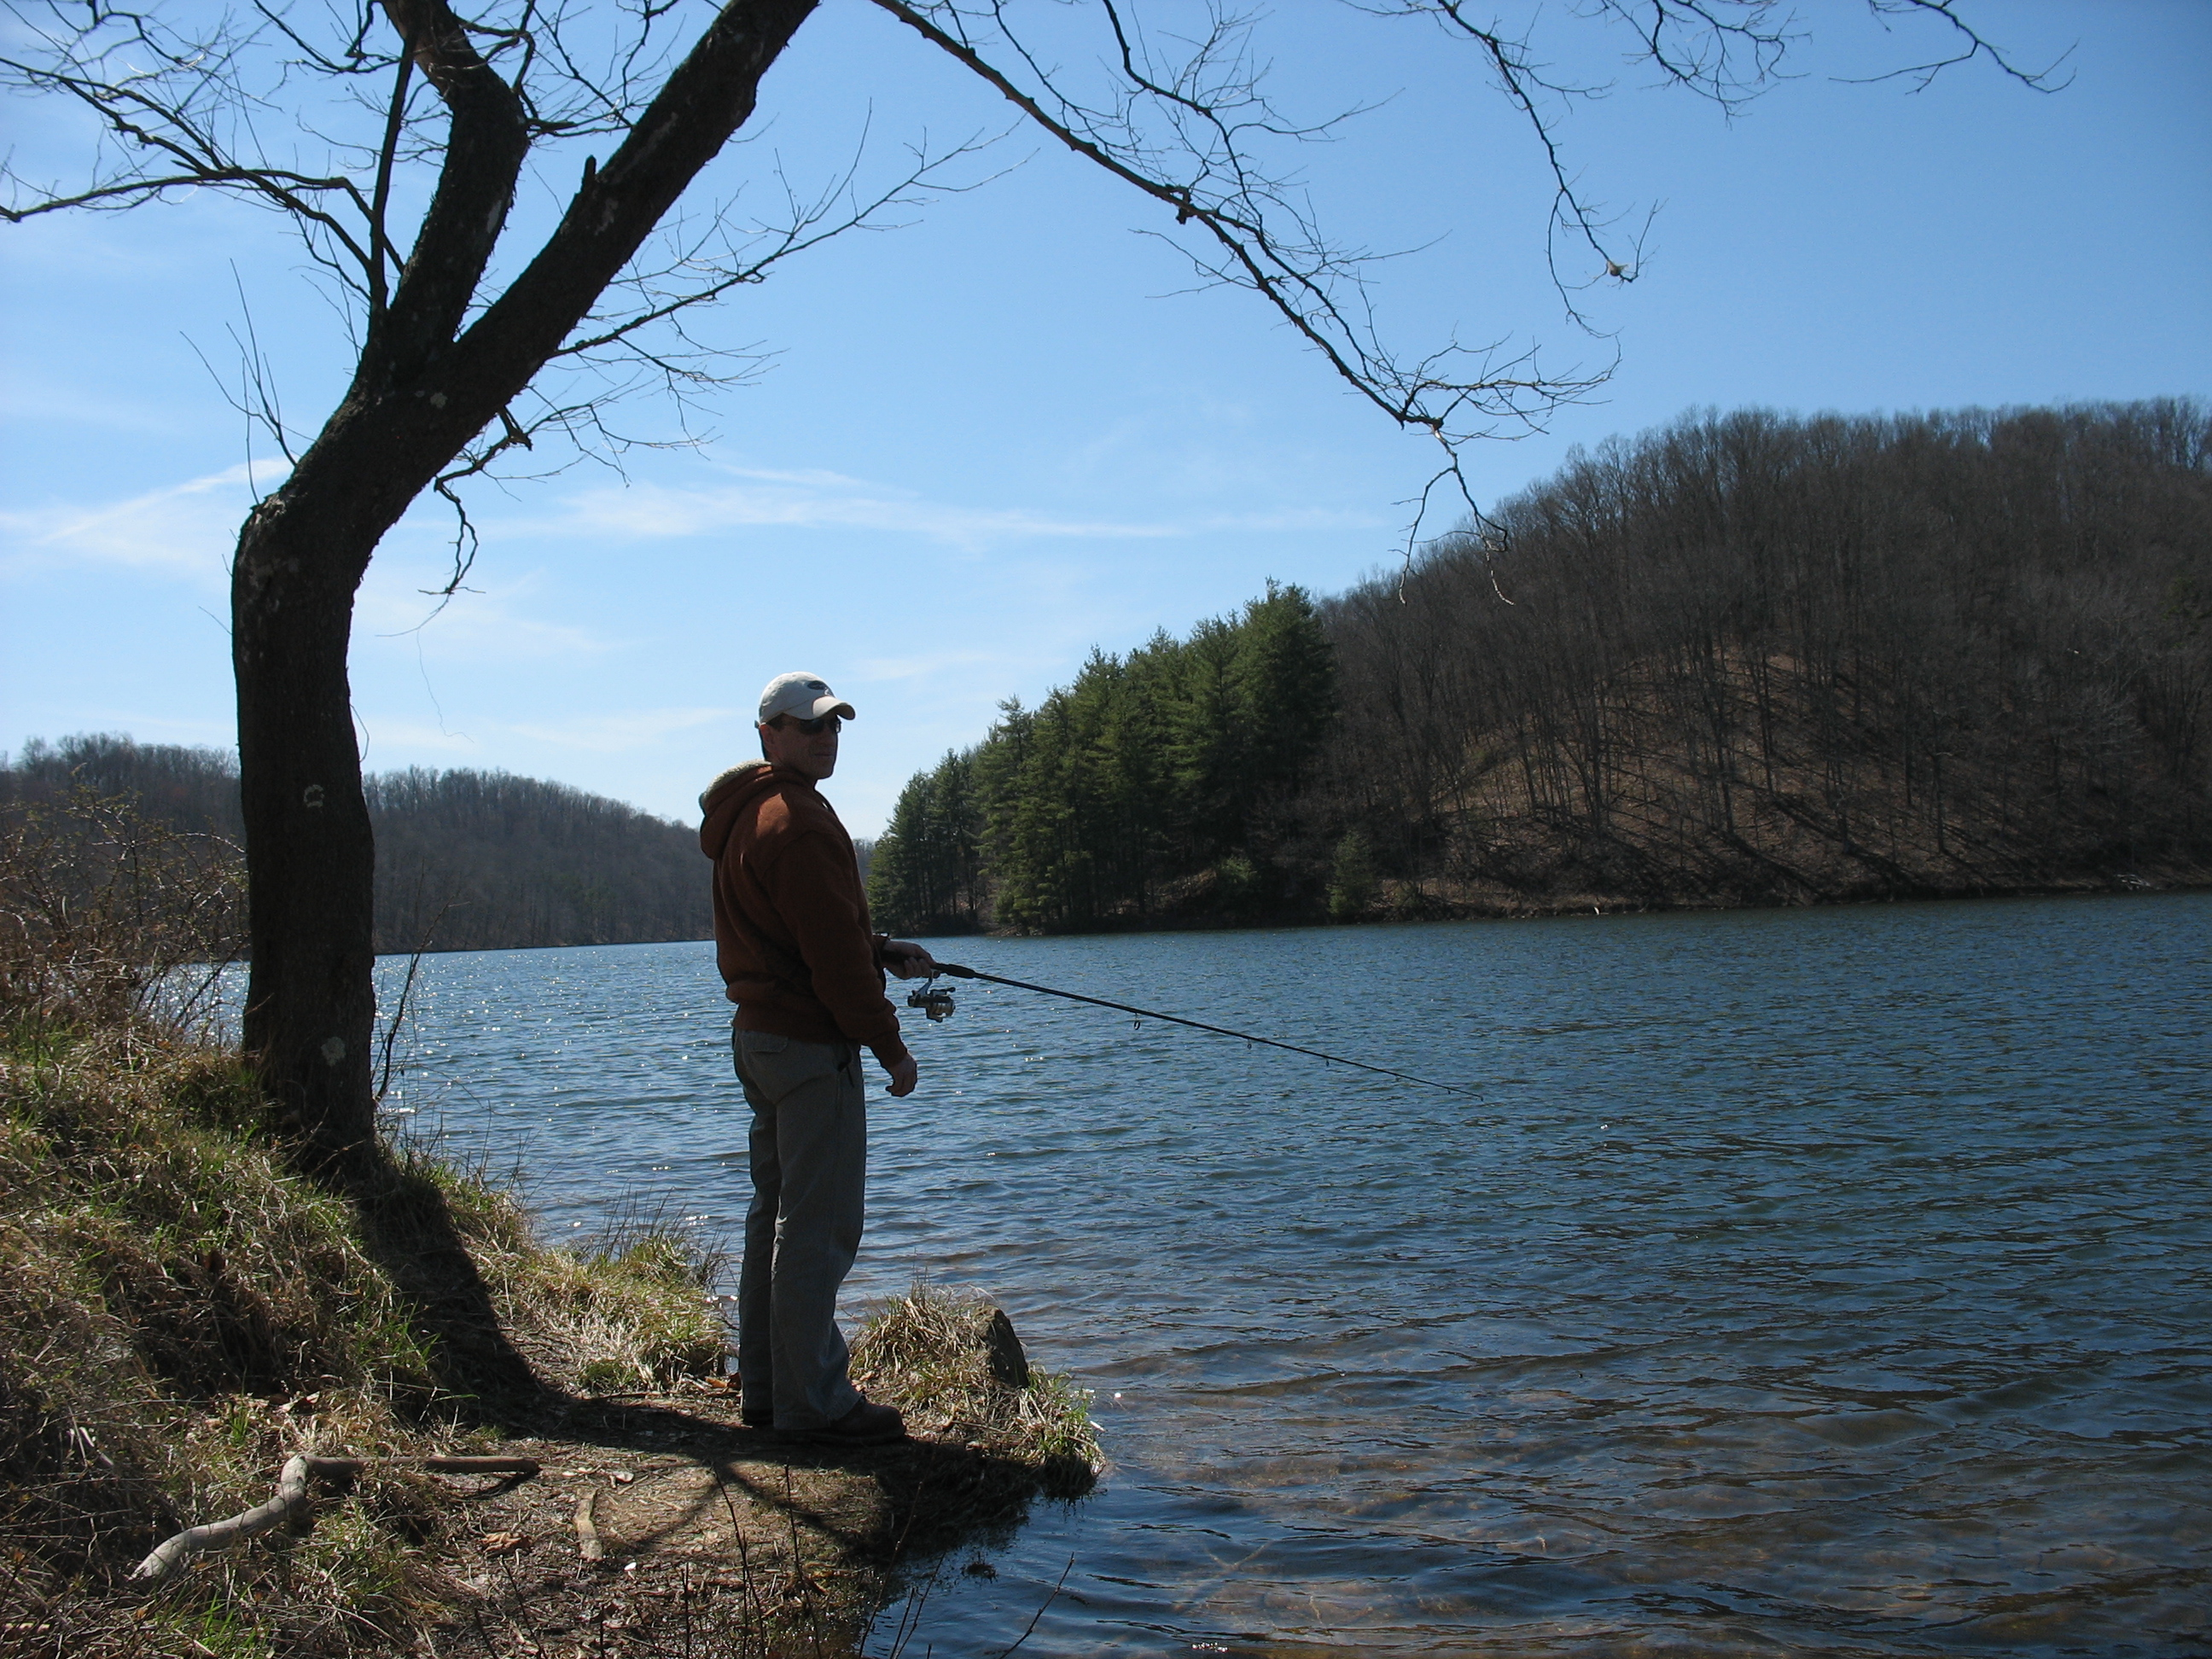 Eastern kentucky fishing report kentuckyangling news for Fishing report kentucky lake